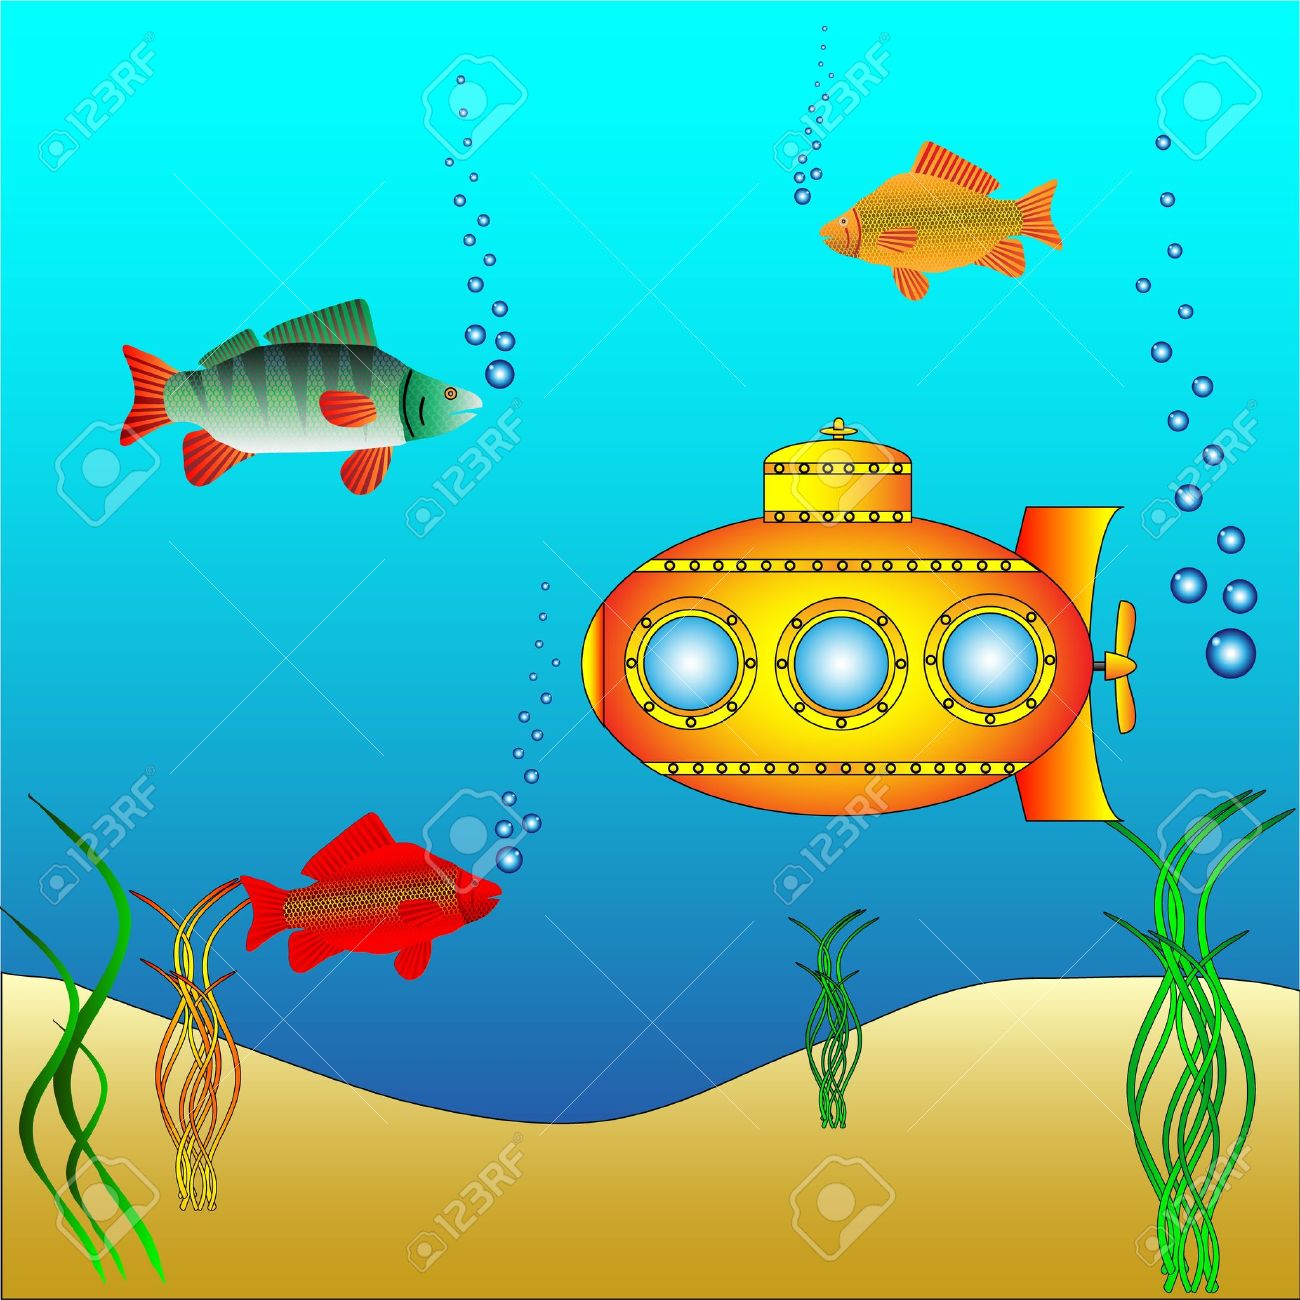 Deep water clipart.